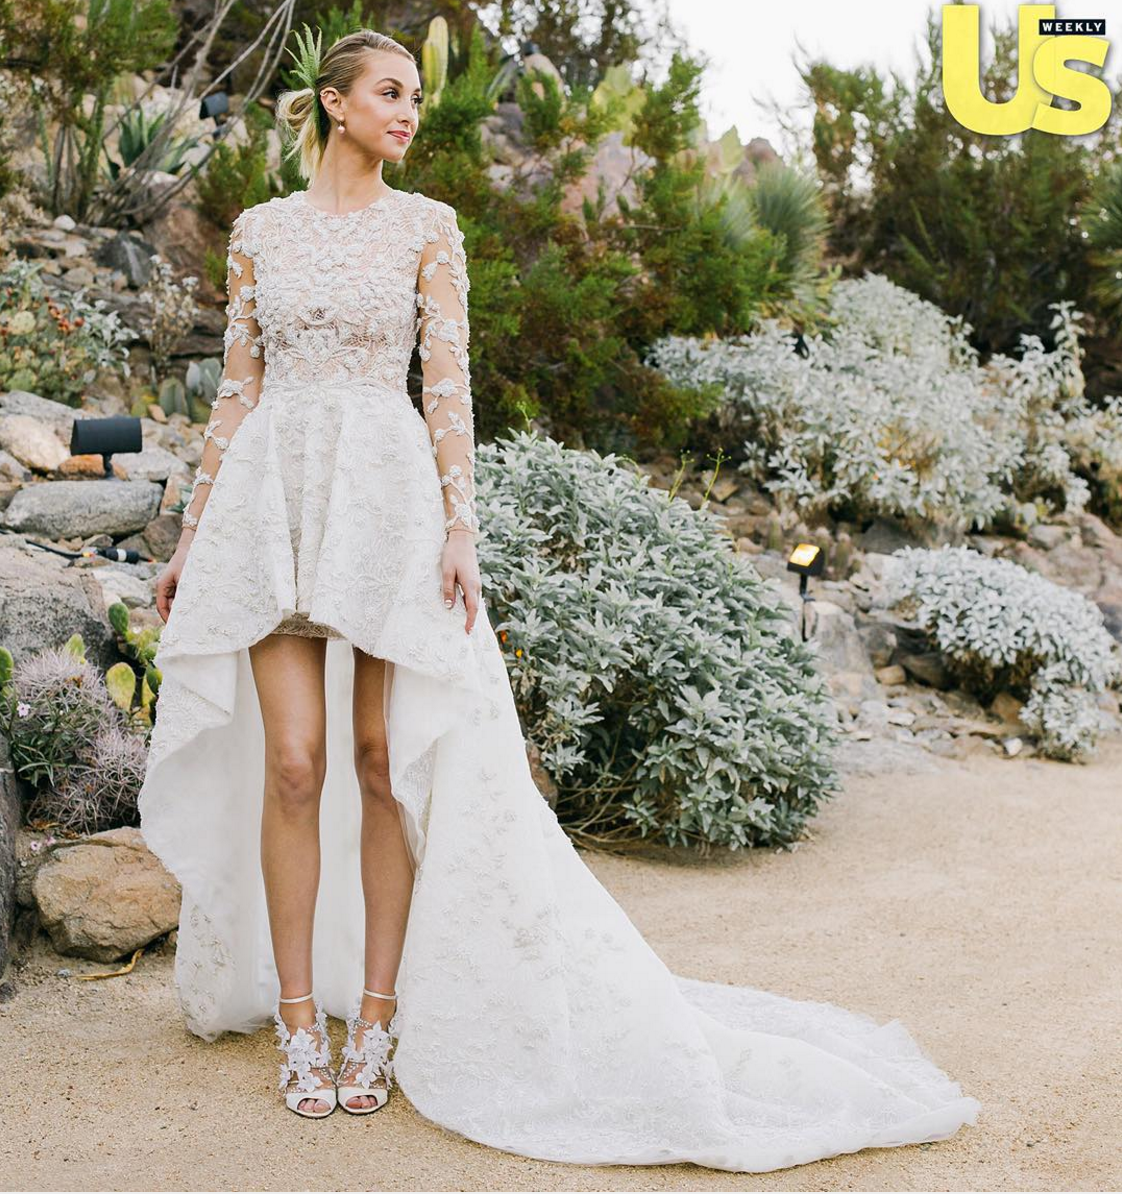 Best celebrity wedding dresses the most stunning celebrity best celebrity wedding dresses the most stunning celebrity wedding dresses ombrellifo Image collections